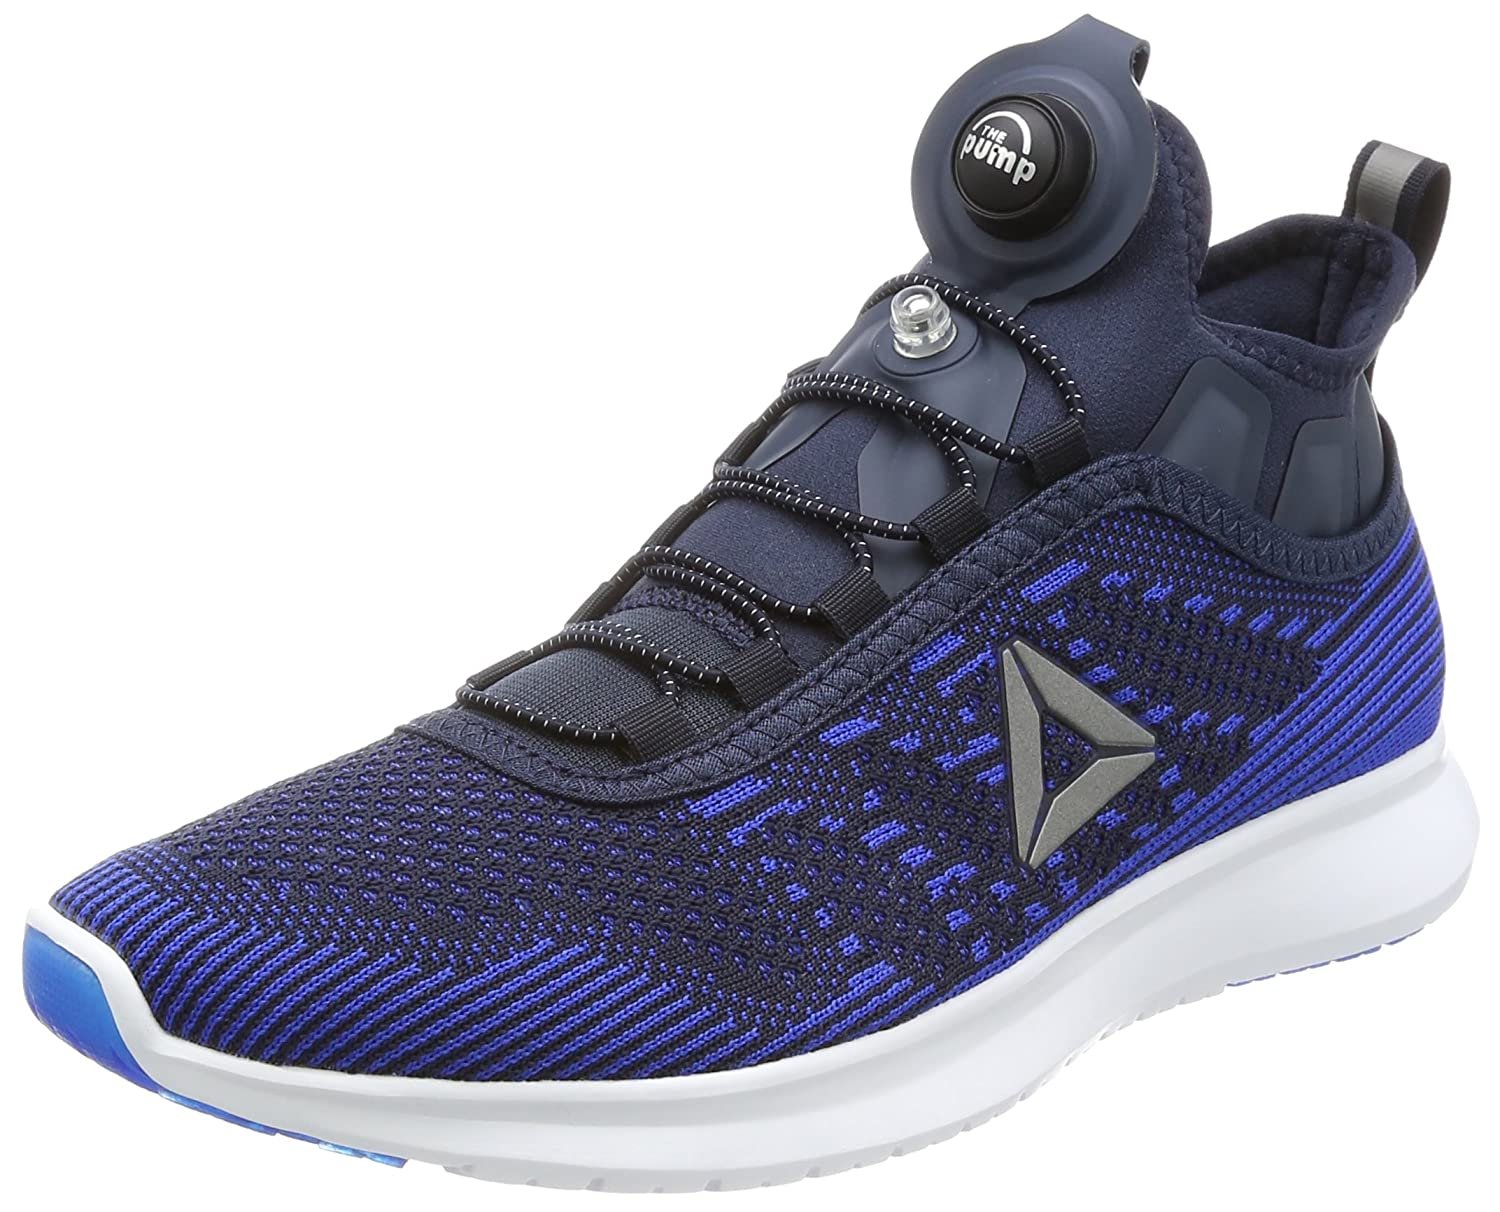 3a3a3bfc9550 Reebok Men s Pump Plus Ultk Vital Blue Night Navy Wht Running Shoes - 10  UK India (44.5 EU)(11 US) (BS8565)  Buy Online at Low Prices in India -  Amazon.in